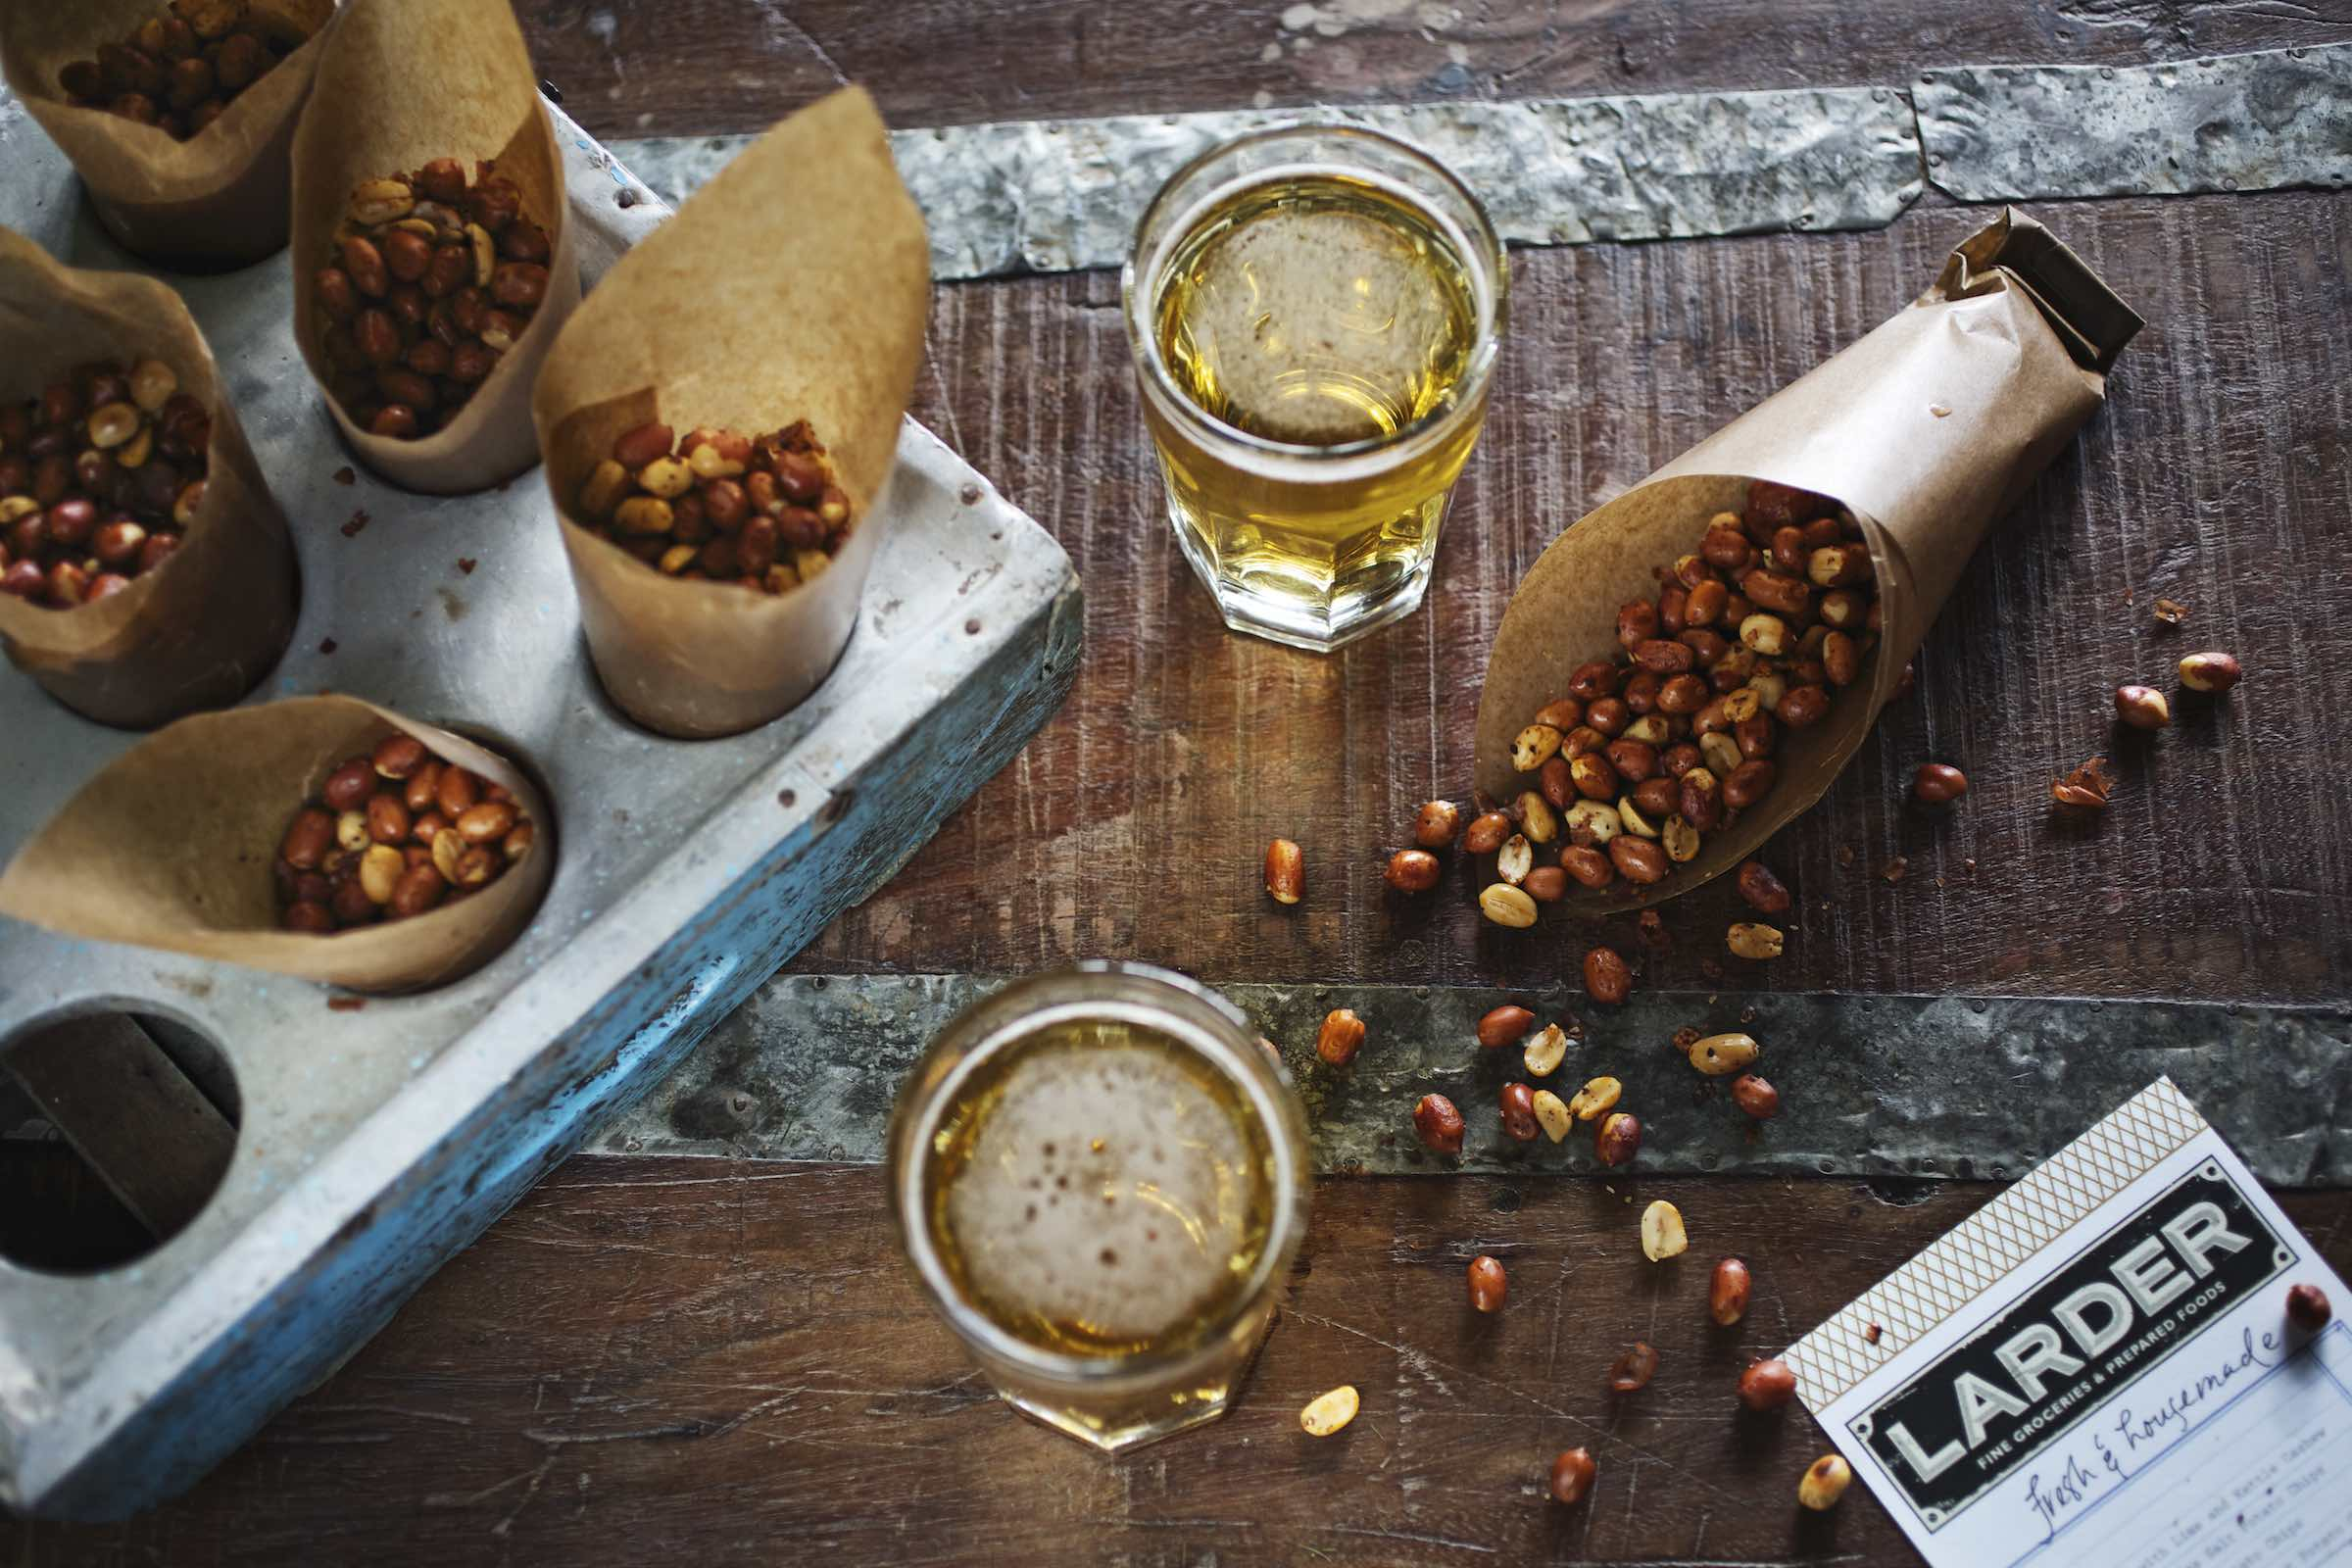 Jody Horton Photography - Roasted peanut snack bags and pale ales.